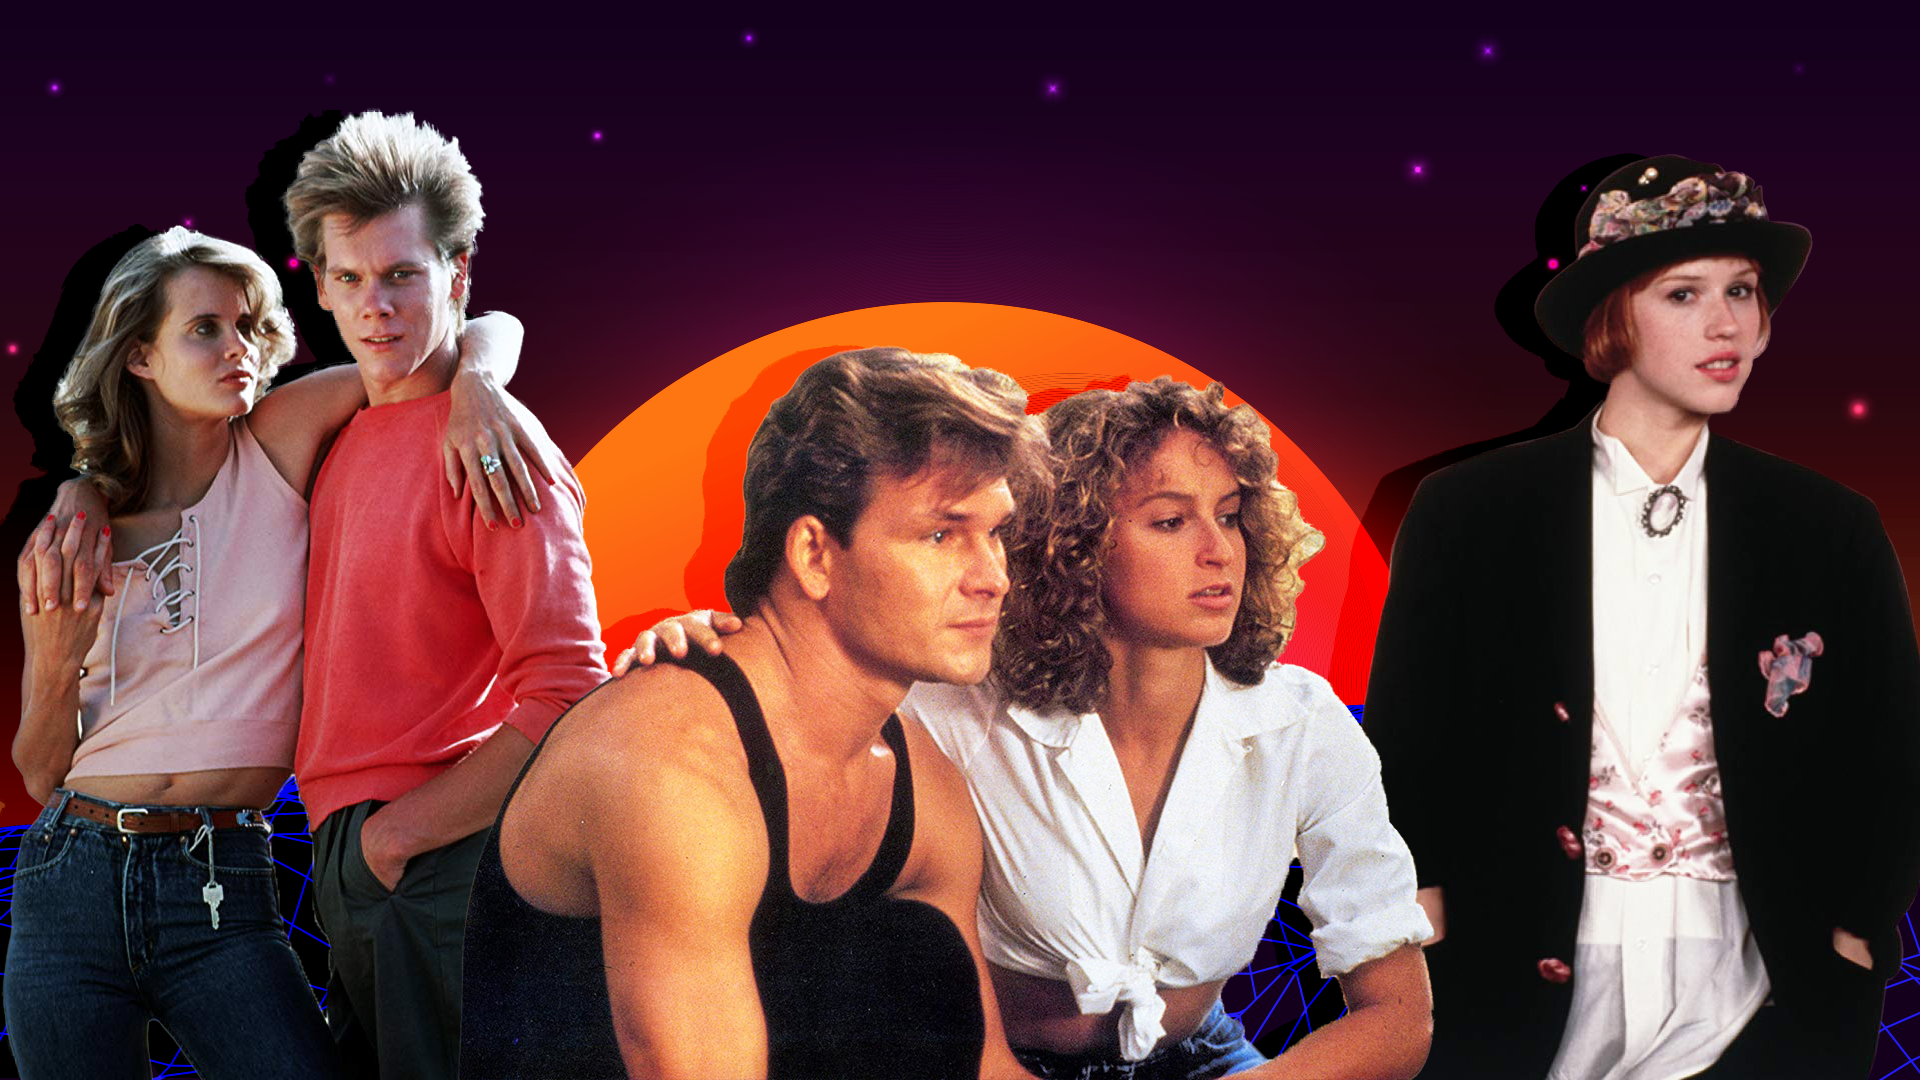 These Iconic 80s Teen Movies Will Never Get Old - SheKnows